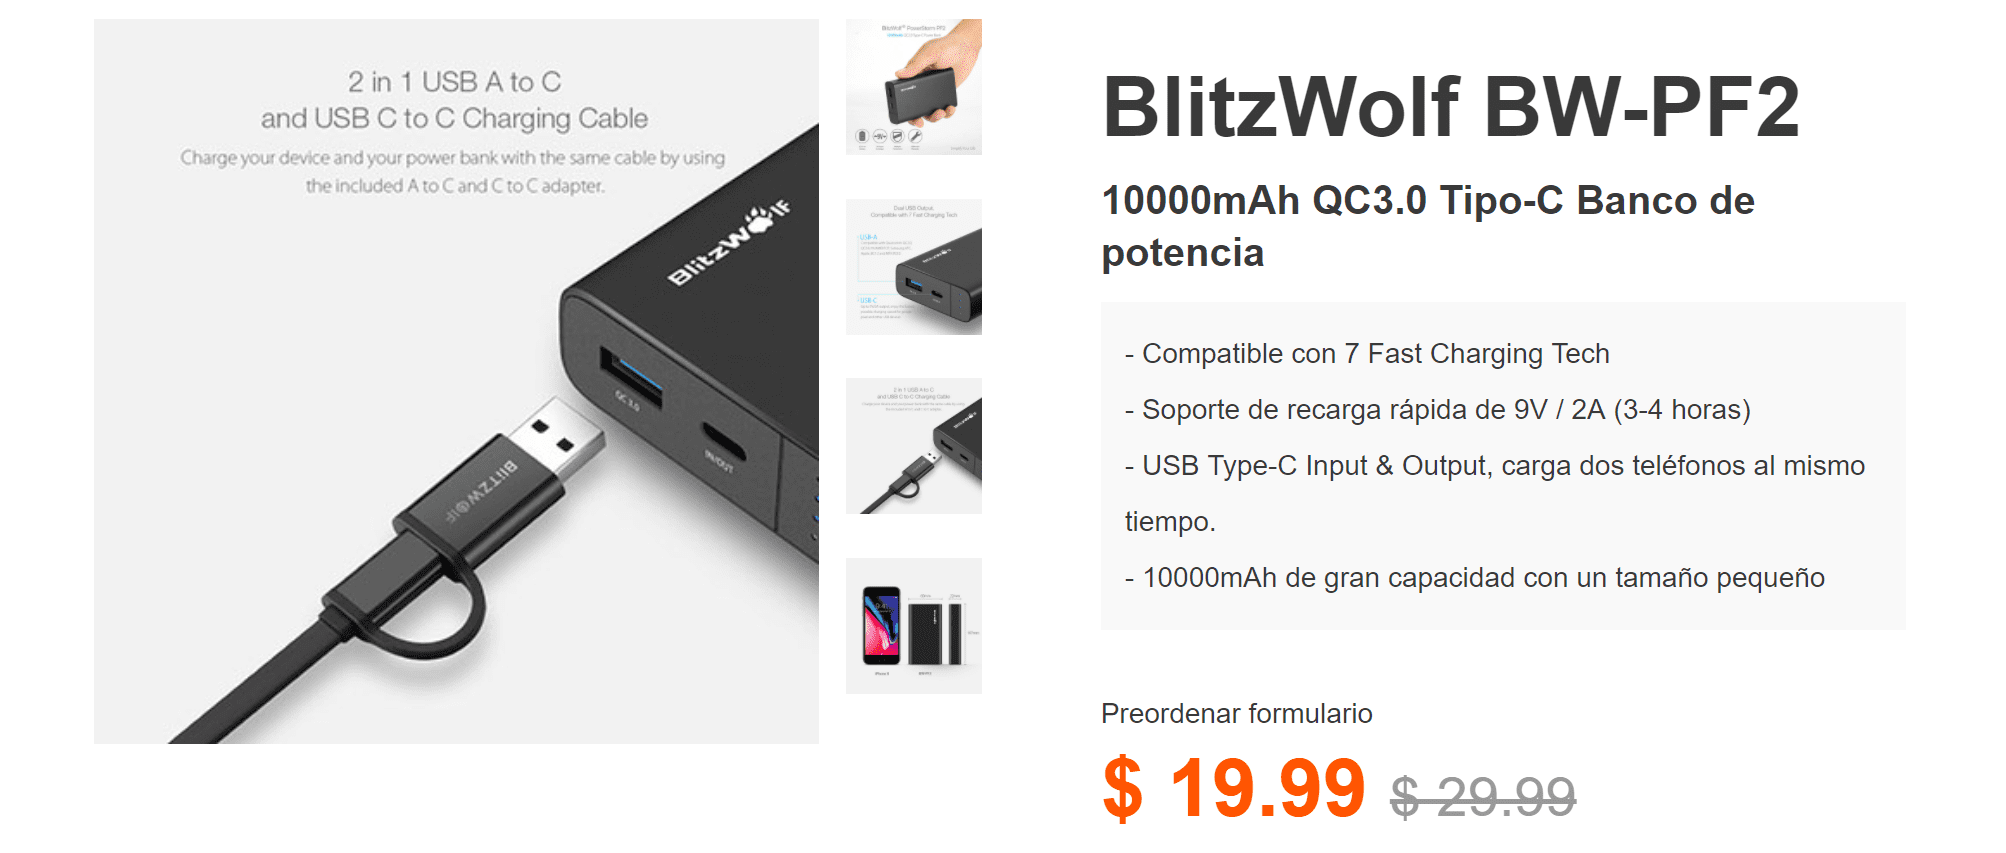 Power Bank USB Type-C de 10000 mAh y carga QC3.0 barato